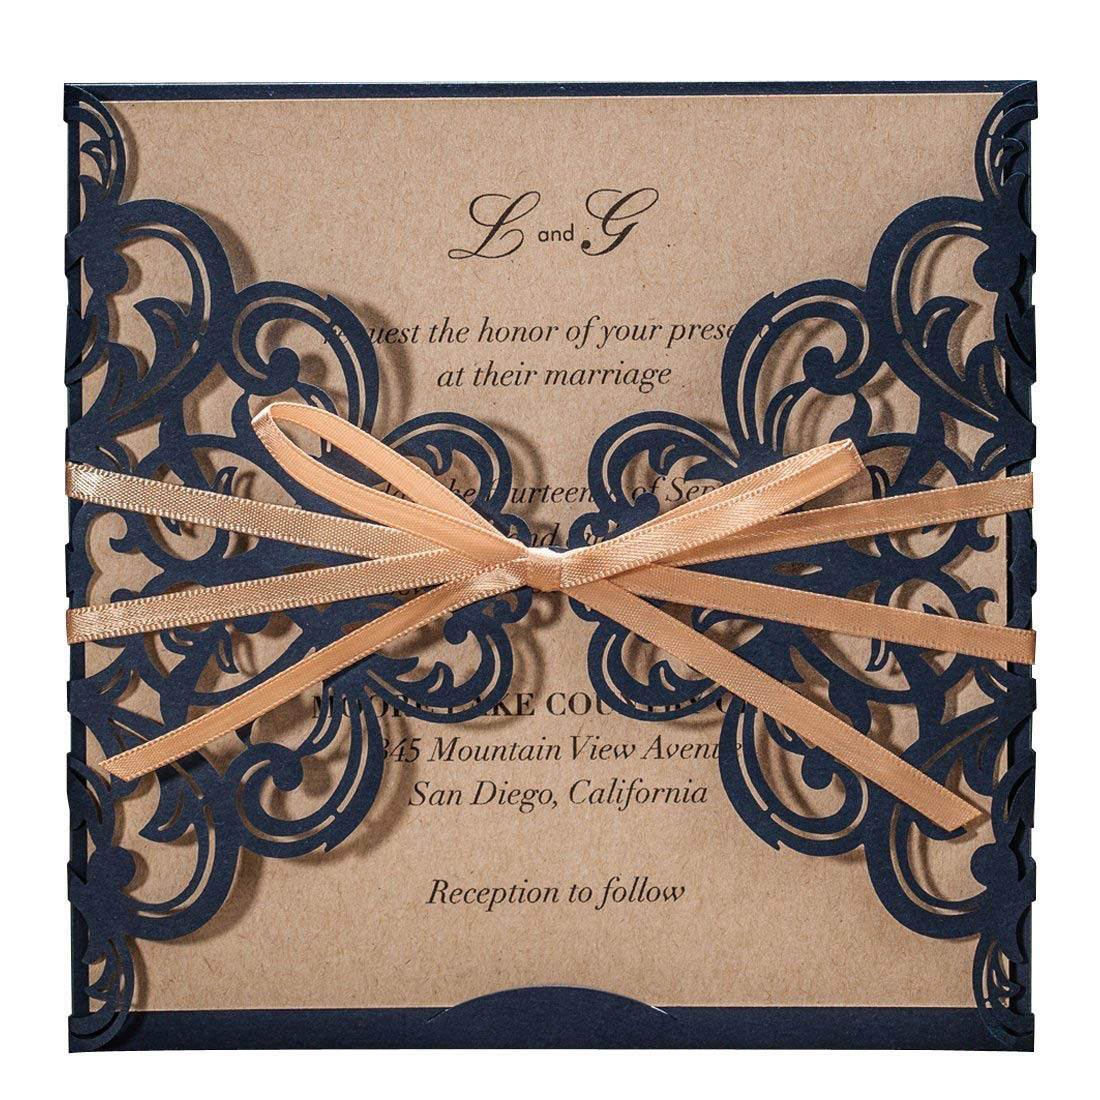 WISHMADE Navy Blue Rustic Square Laser Cut Wedding Invitations Cards with Bow Lace Sleeve Cards for Engagement Baby Shower Birthday Quinceanera (Set of 50pcs)